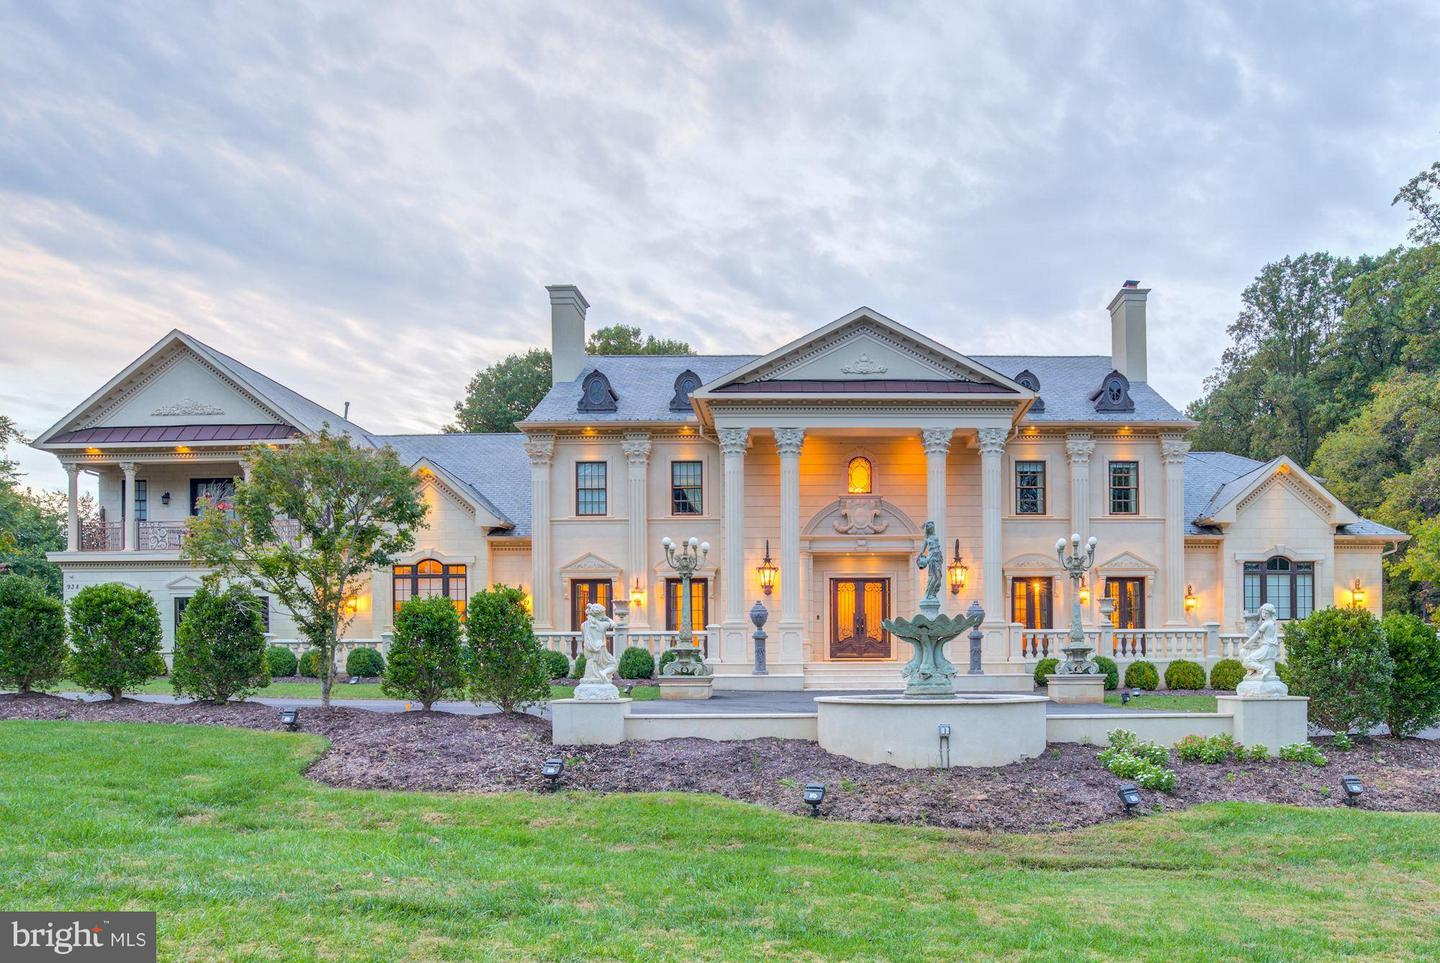 Single Family Home for Sale at 938 Peacock Station Road 938 Peacock Station Road McLean, Virginia 22102 United States